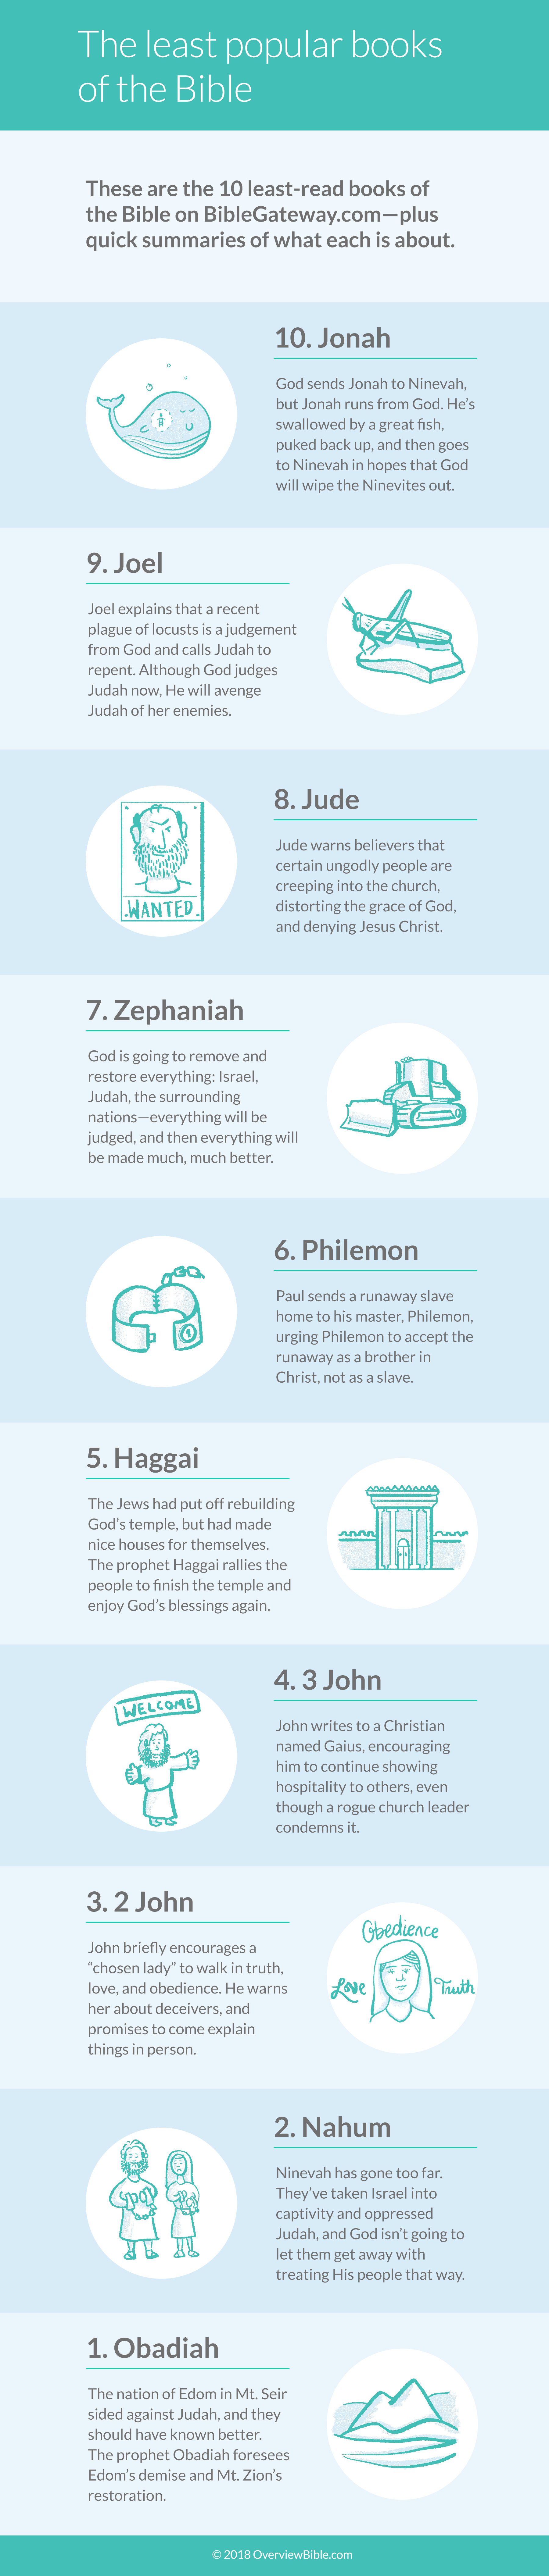 The 10 least popular books of the Bible [infographic